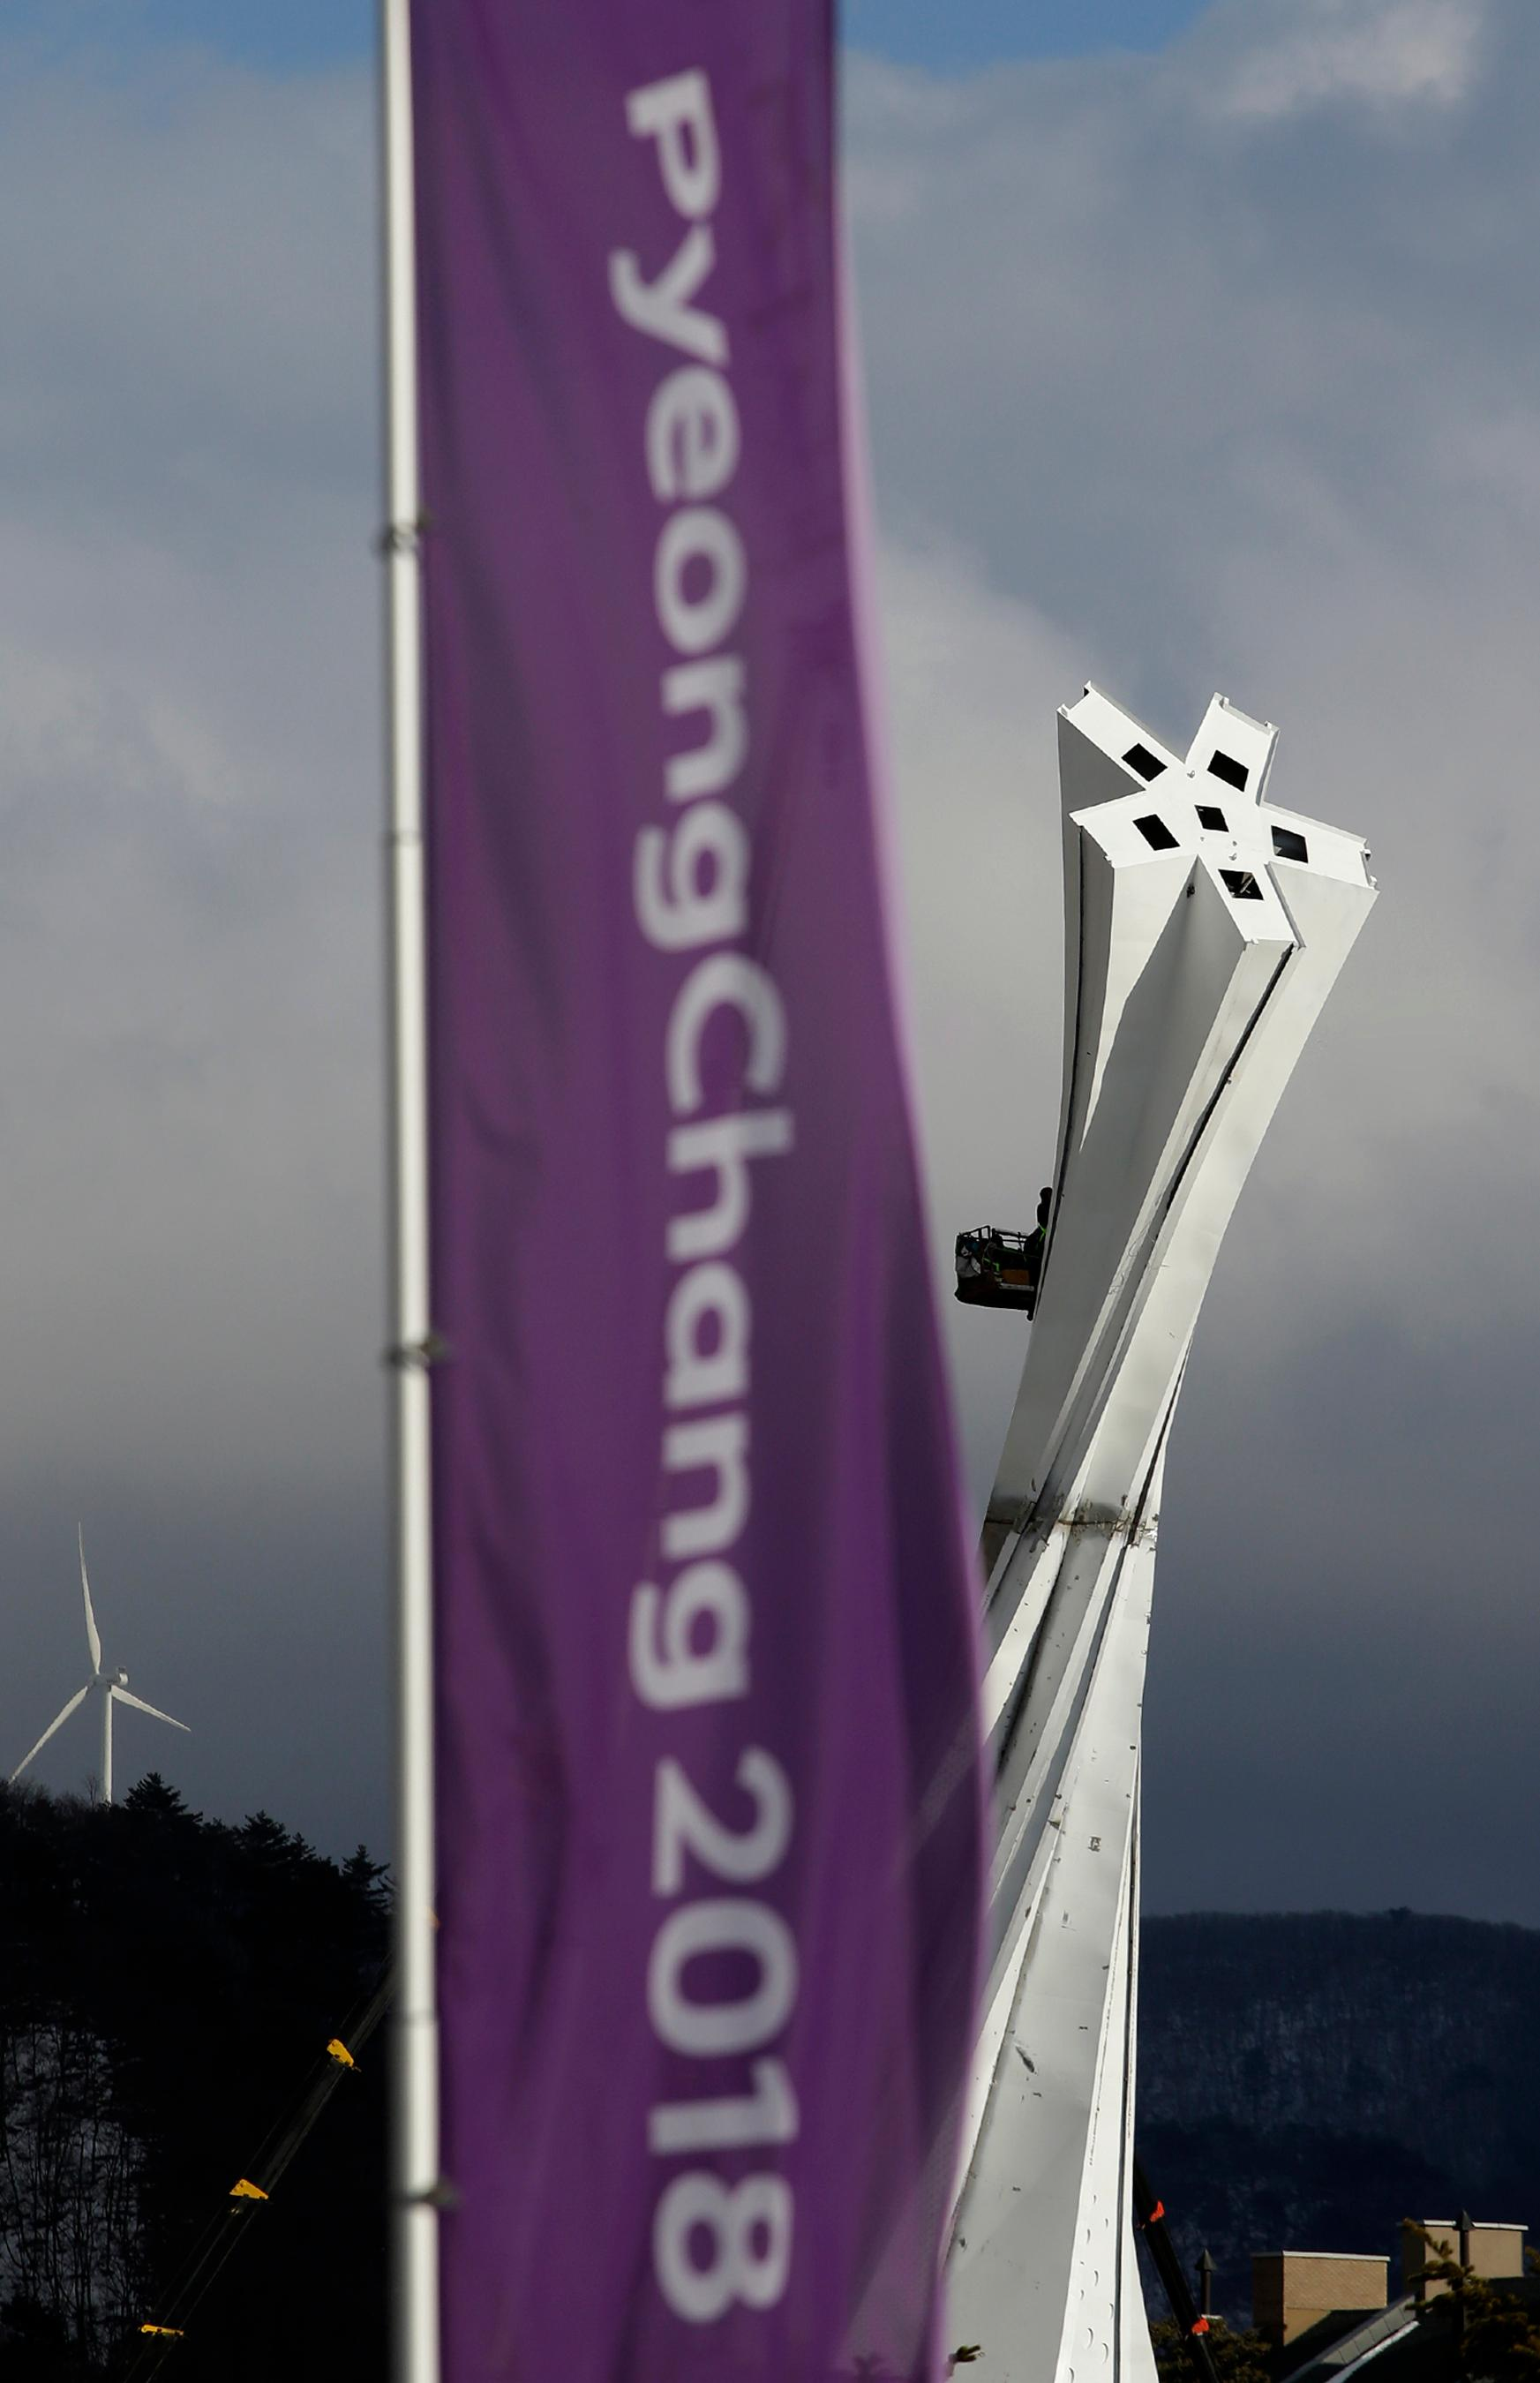 An Olympic Cauldron under construction rises beyond Olympic banners at the Alpensia resort at the 2018 Winter Olympics in Pyeongchang, South Korea, Friday, Feb. 2, 2018. (AP Photo/Charlie Riedel)